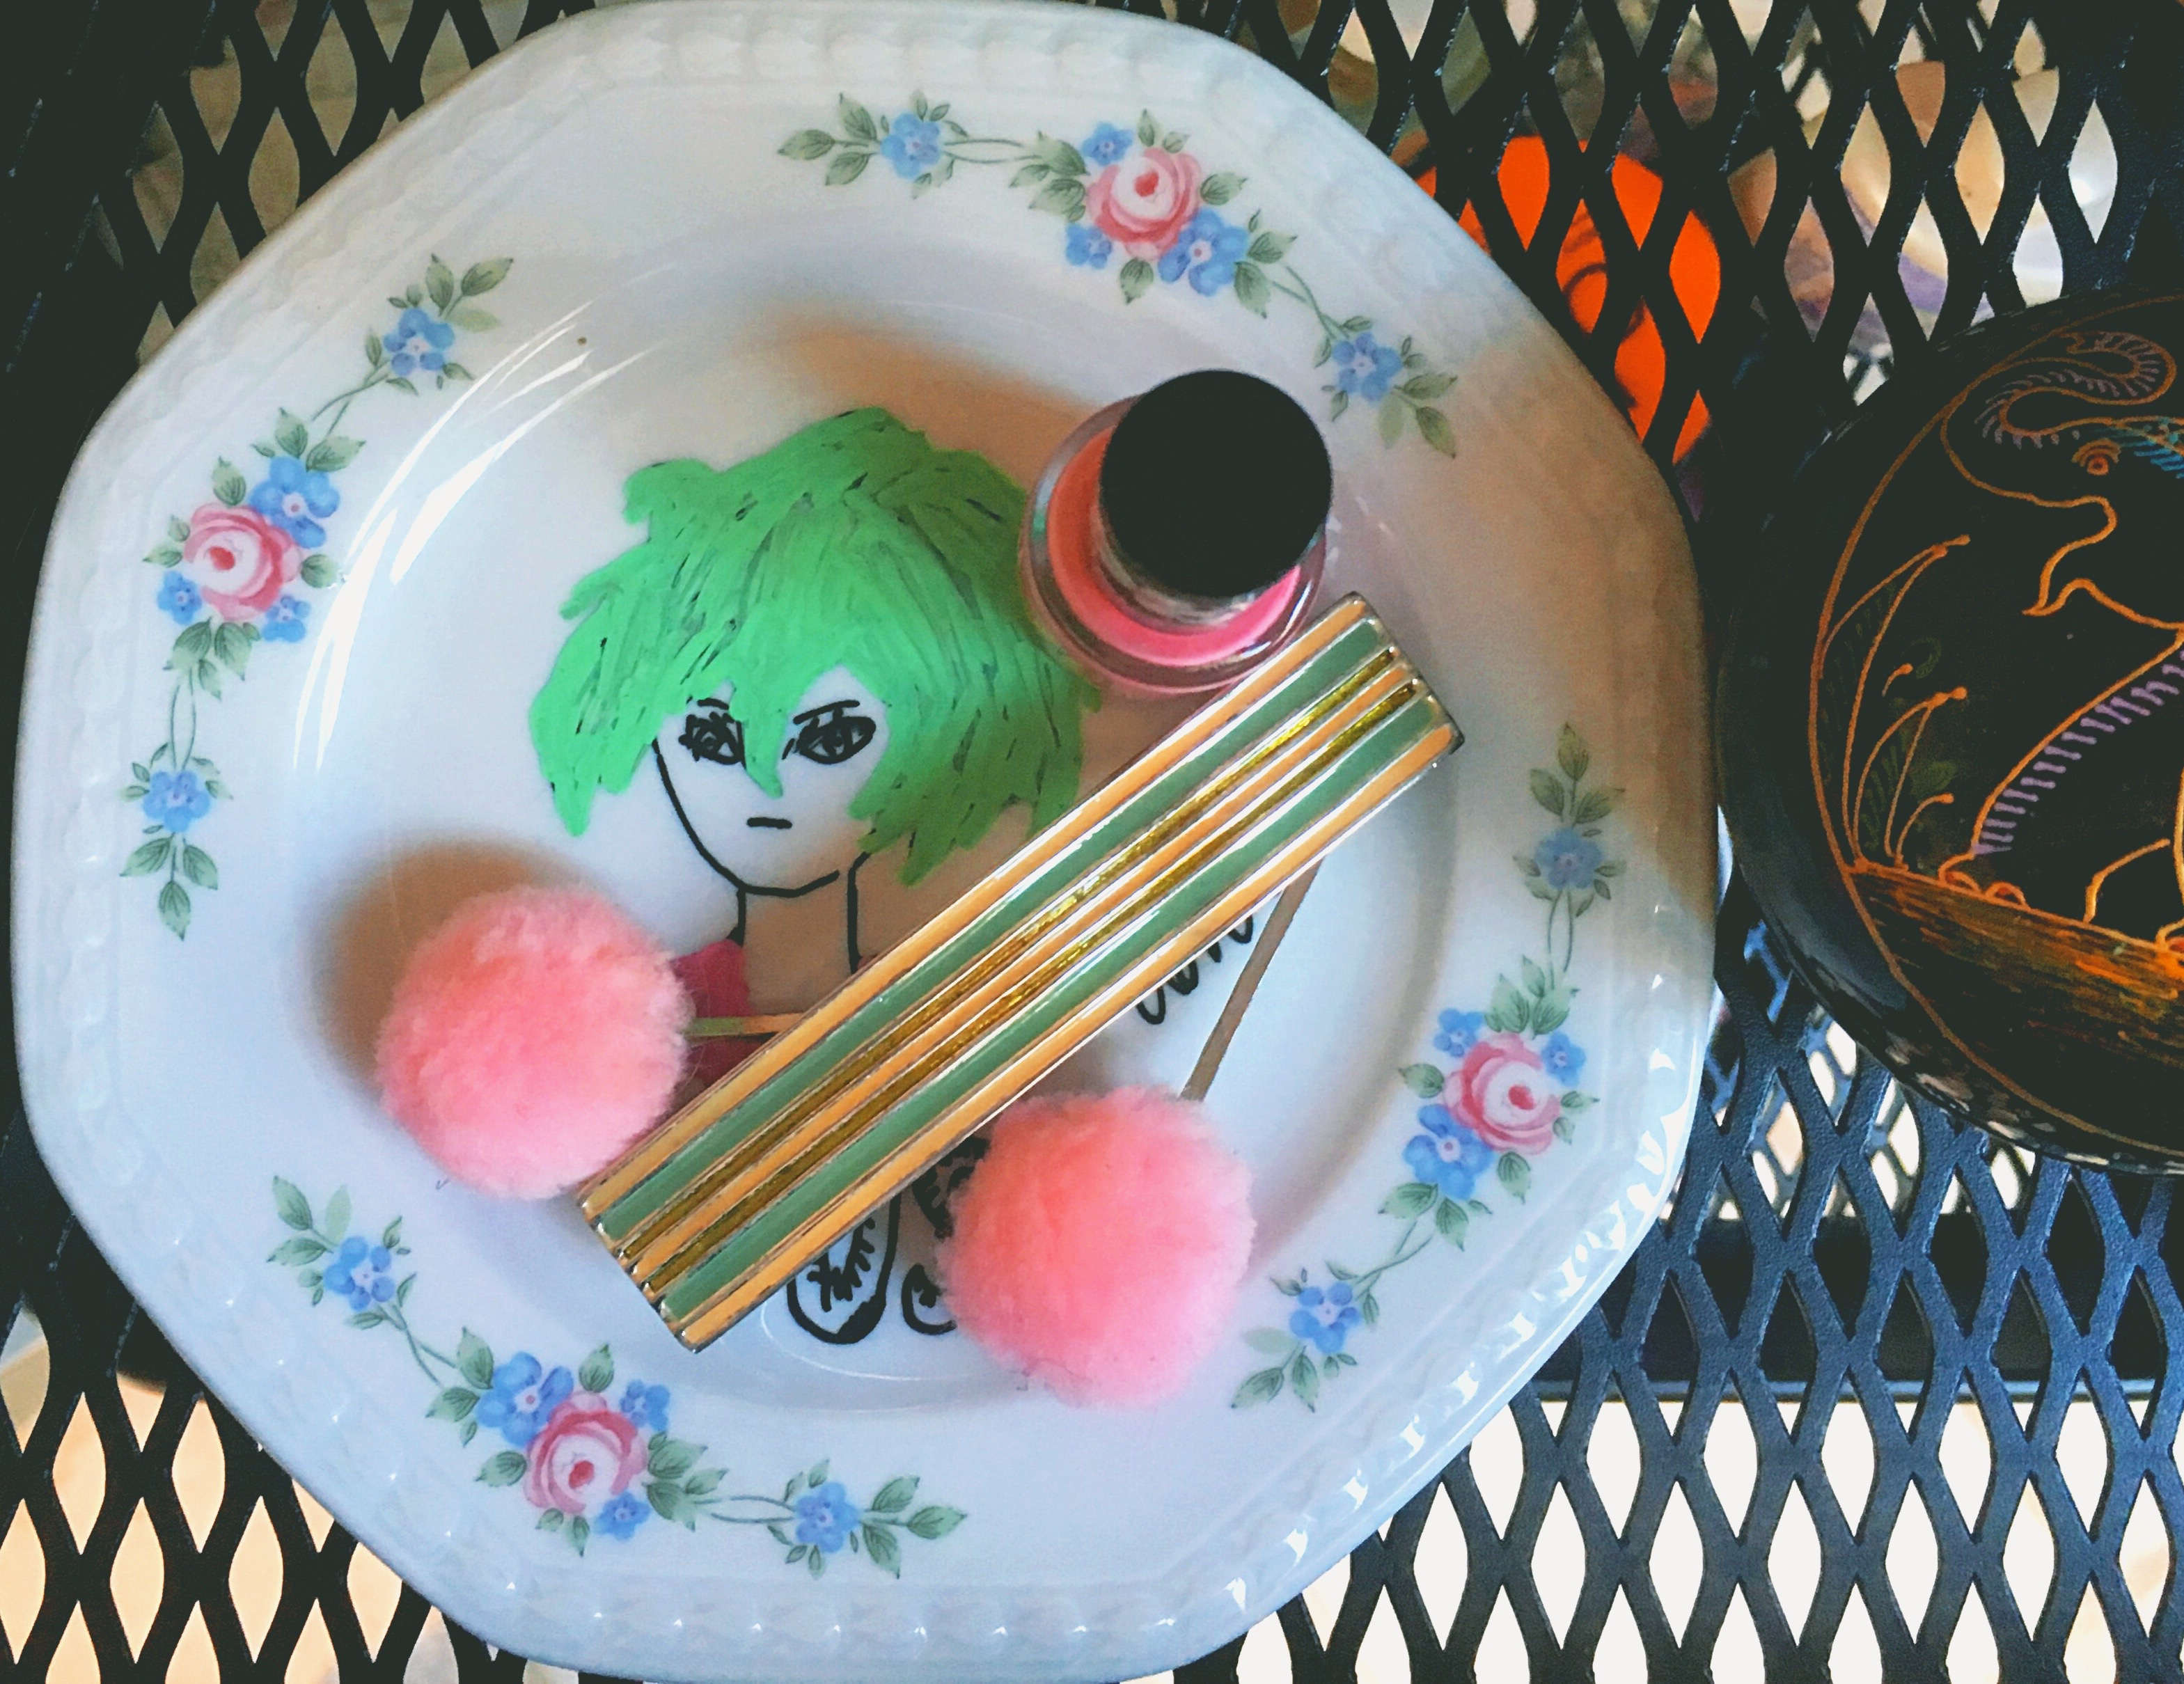 A plate with som hair accessories and nail polish